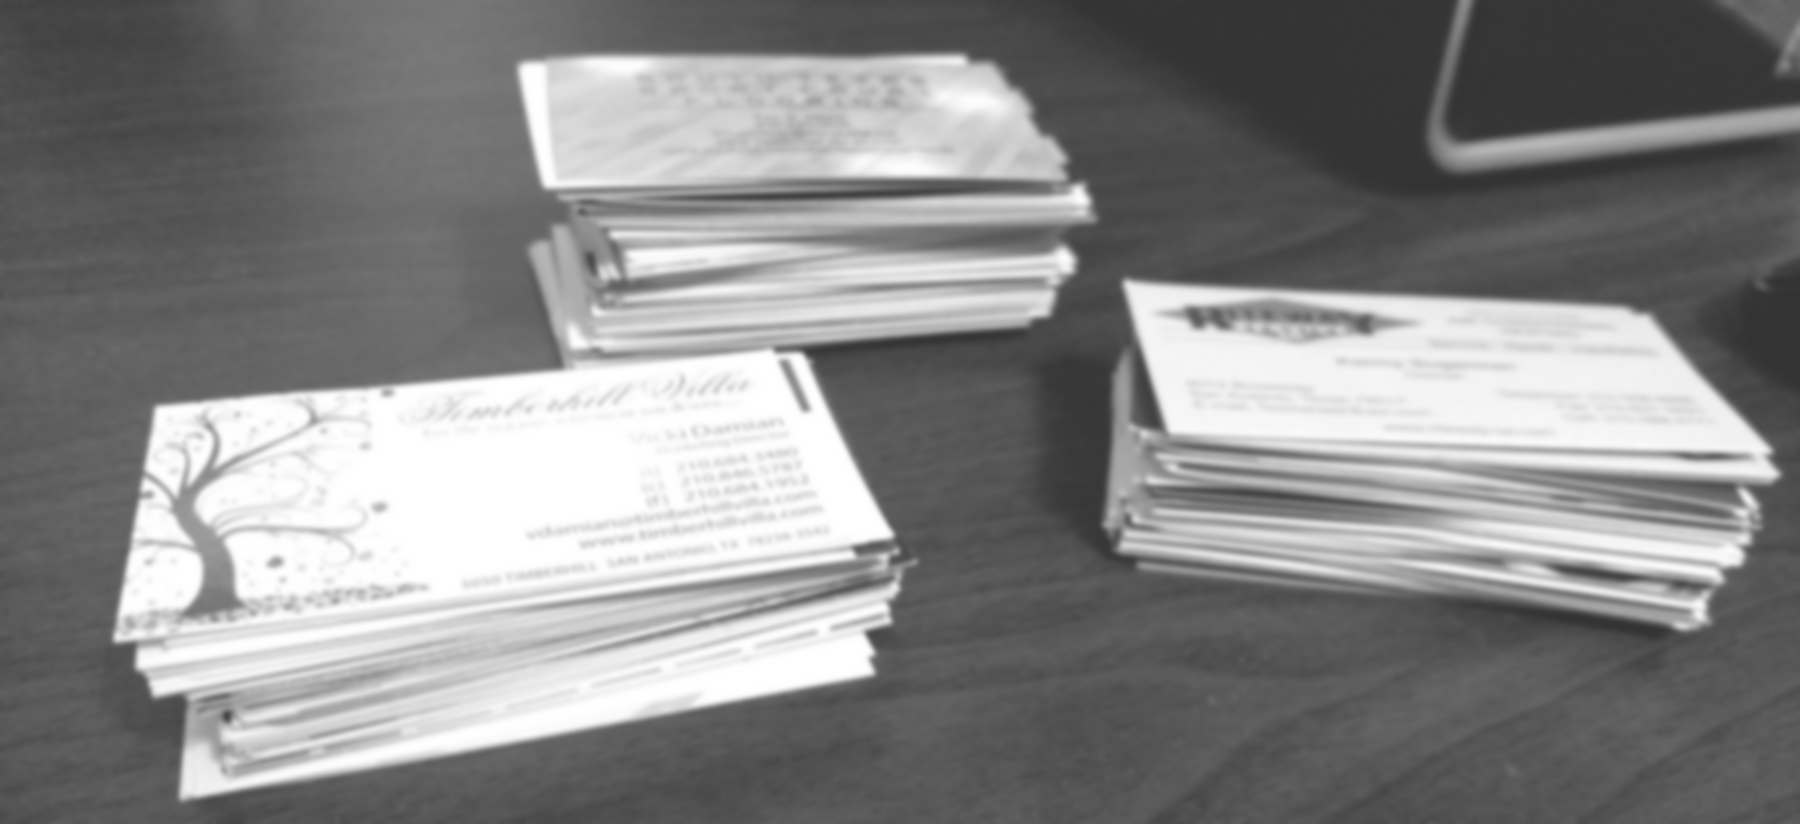 Business cards in stacks